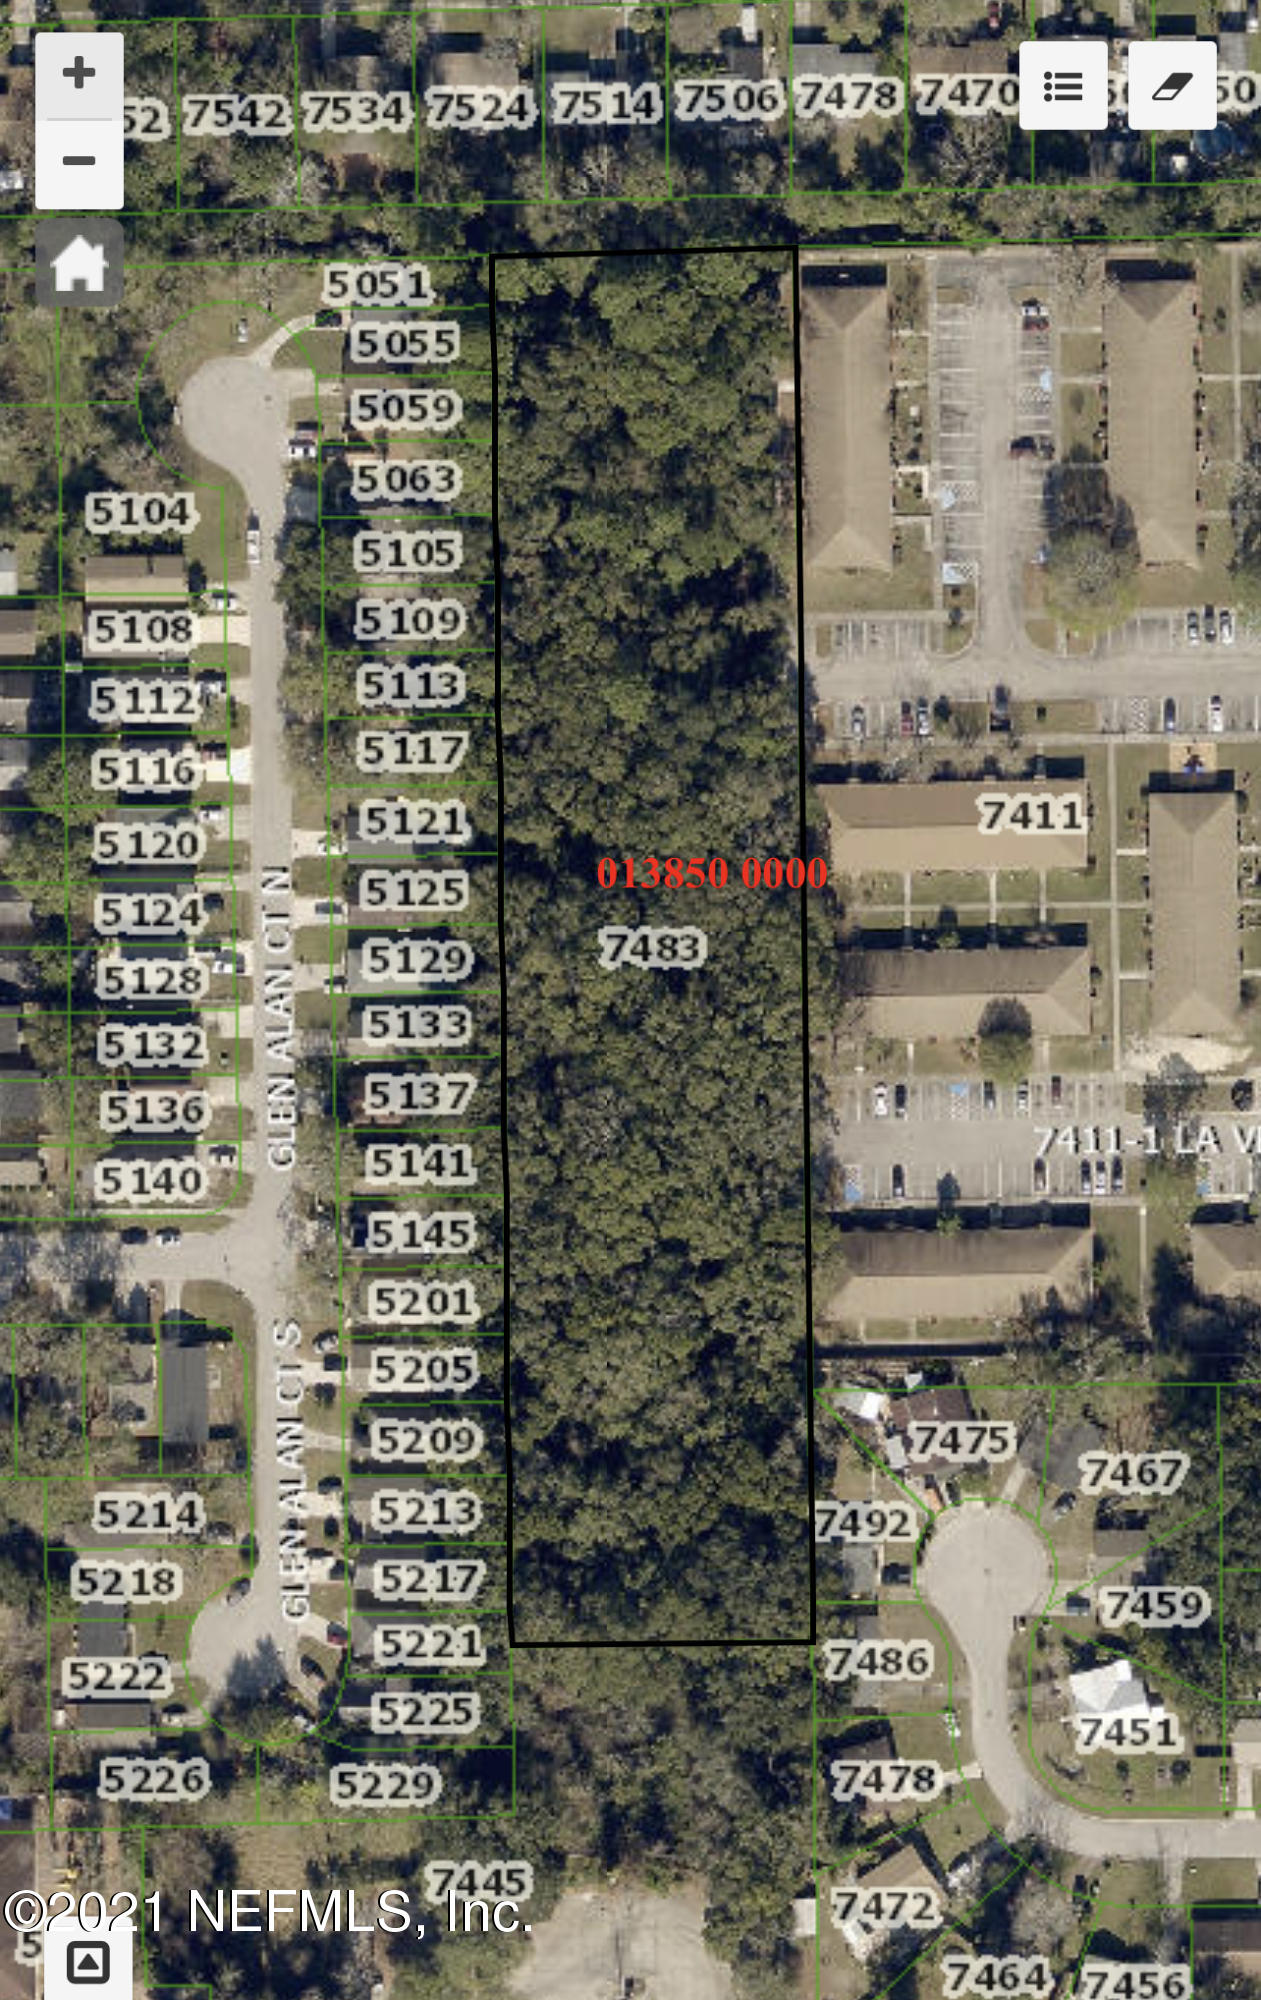 7483 103RD, JACKSONVILLE, FLORIDA 32210, ,Vacant land,For sale,103RD,1090757